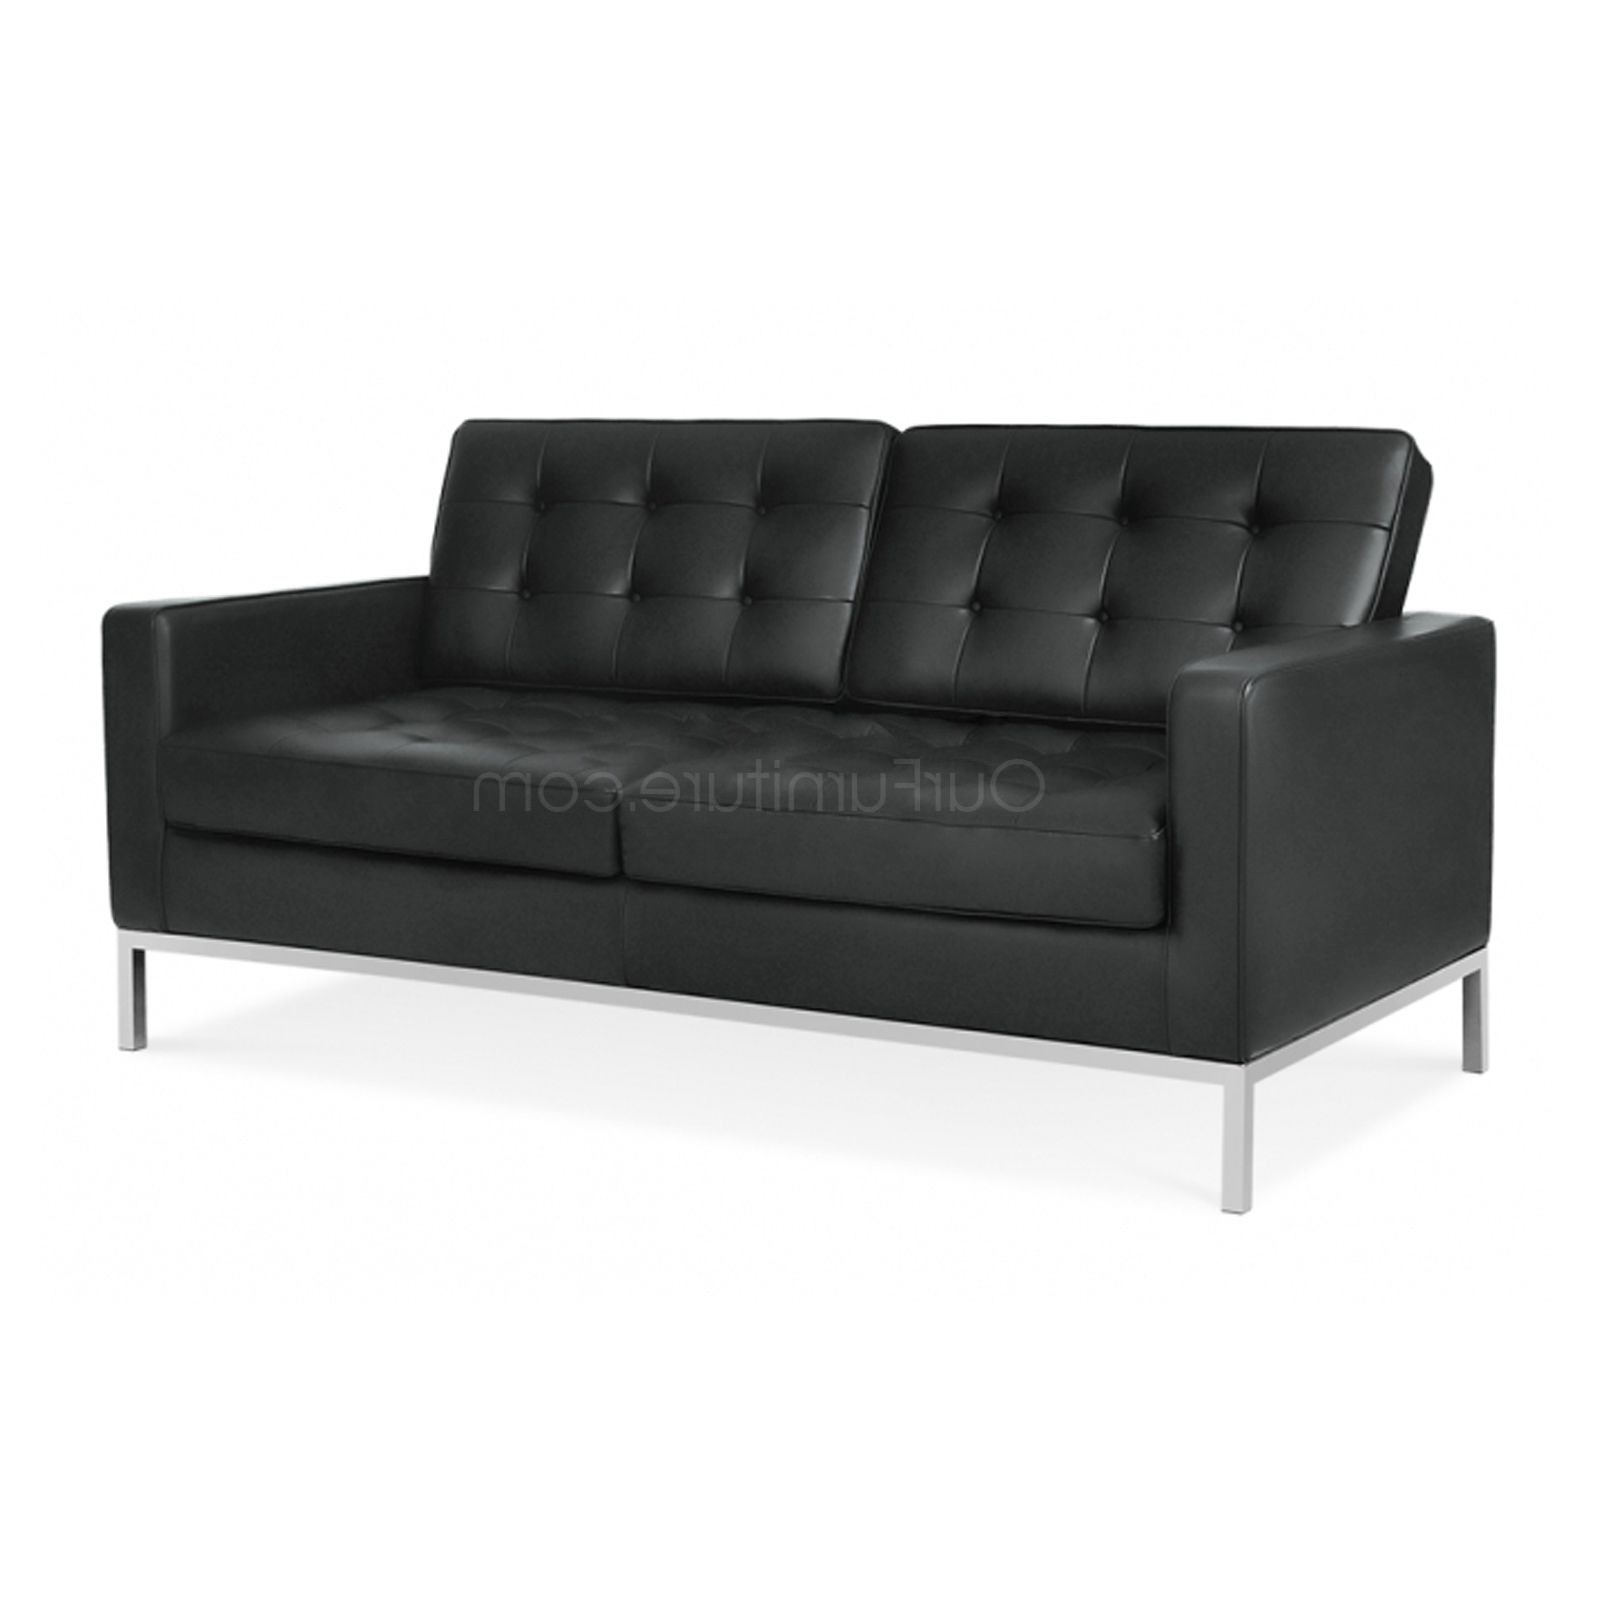 Florence Knoll Style 2 Seater Sofa Semi Aniline Leather Pertaining To Best And Newest Florence Knoll Style Sofas (View 6 of 20)